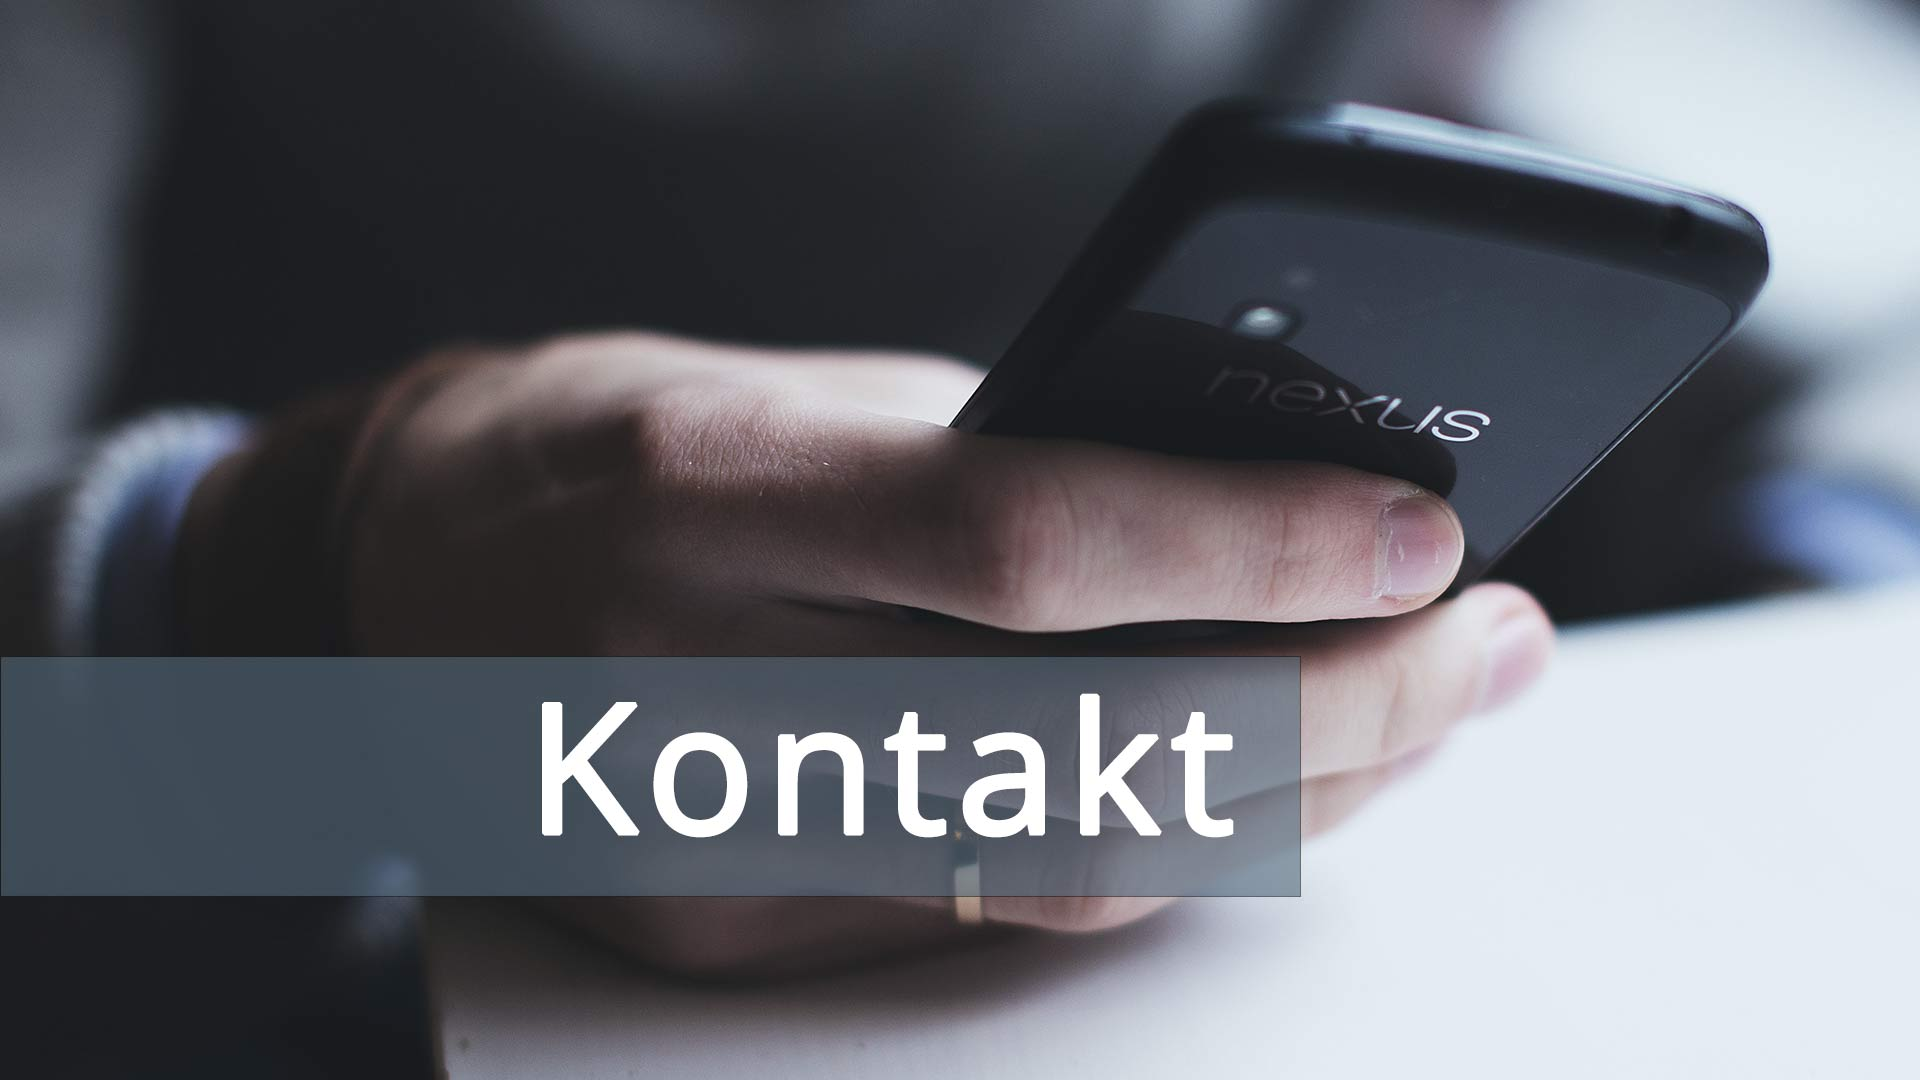 Kontakt zu den IT-Beratern